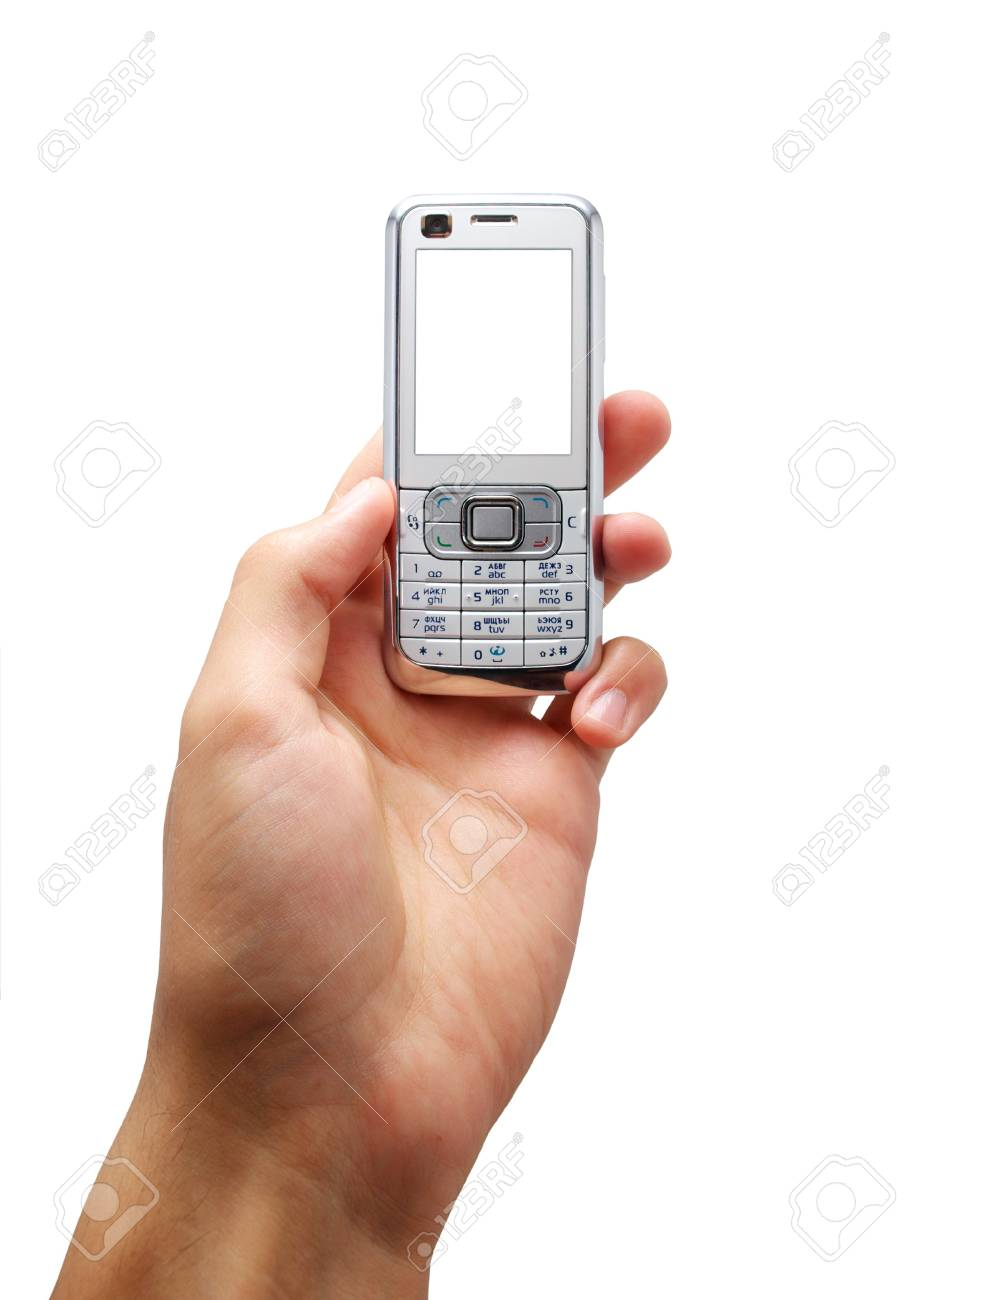 Mobile in hand. Element of design. Stock Photo - 7990814